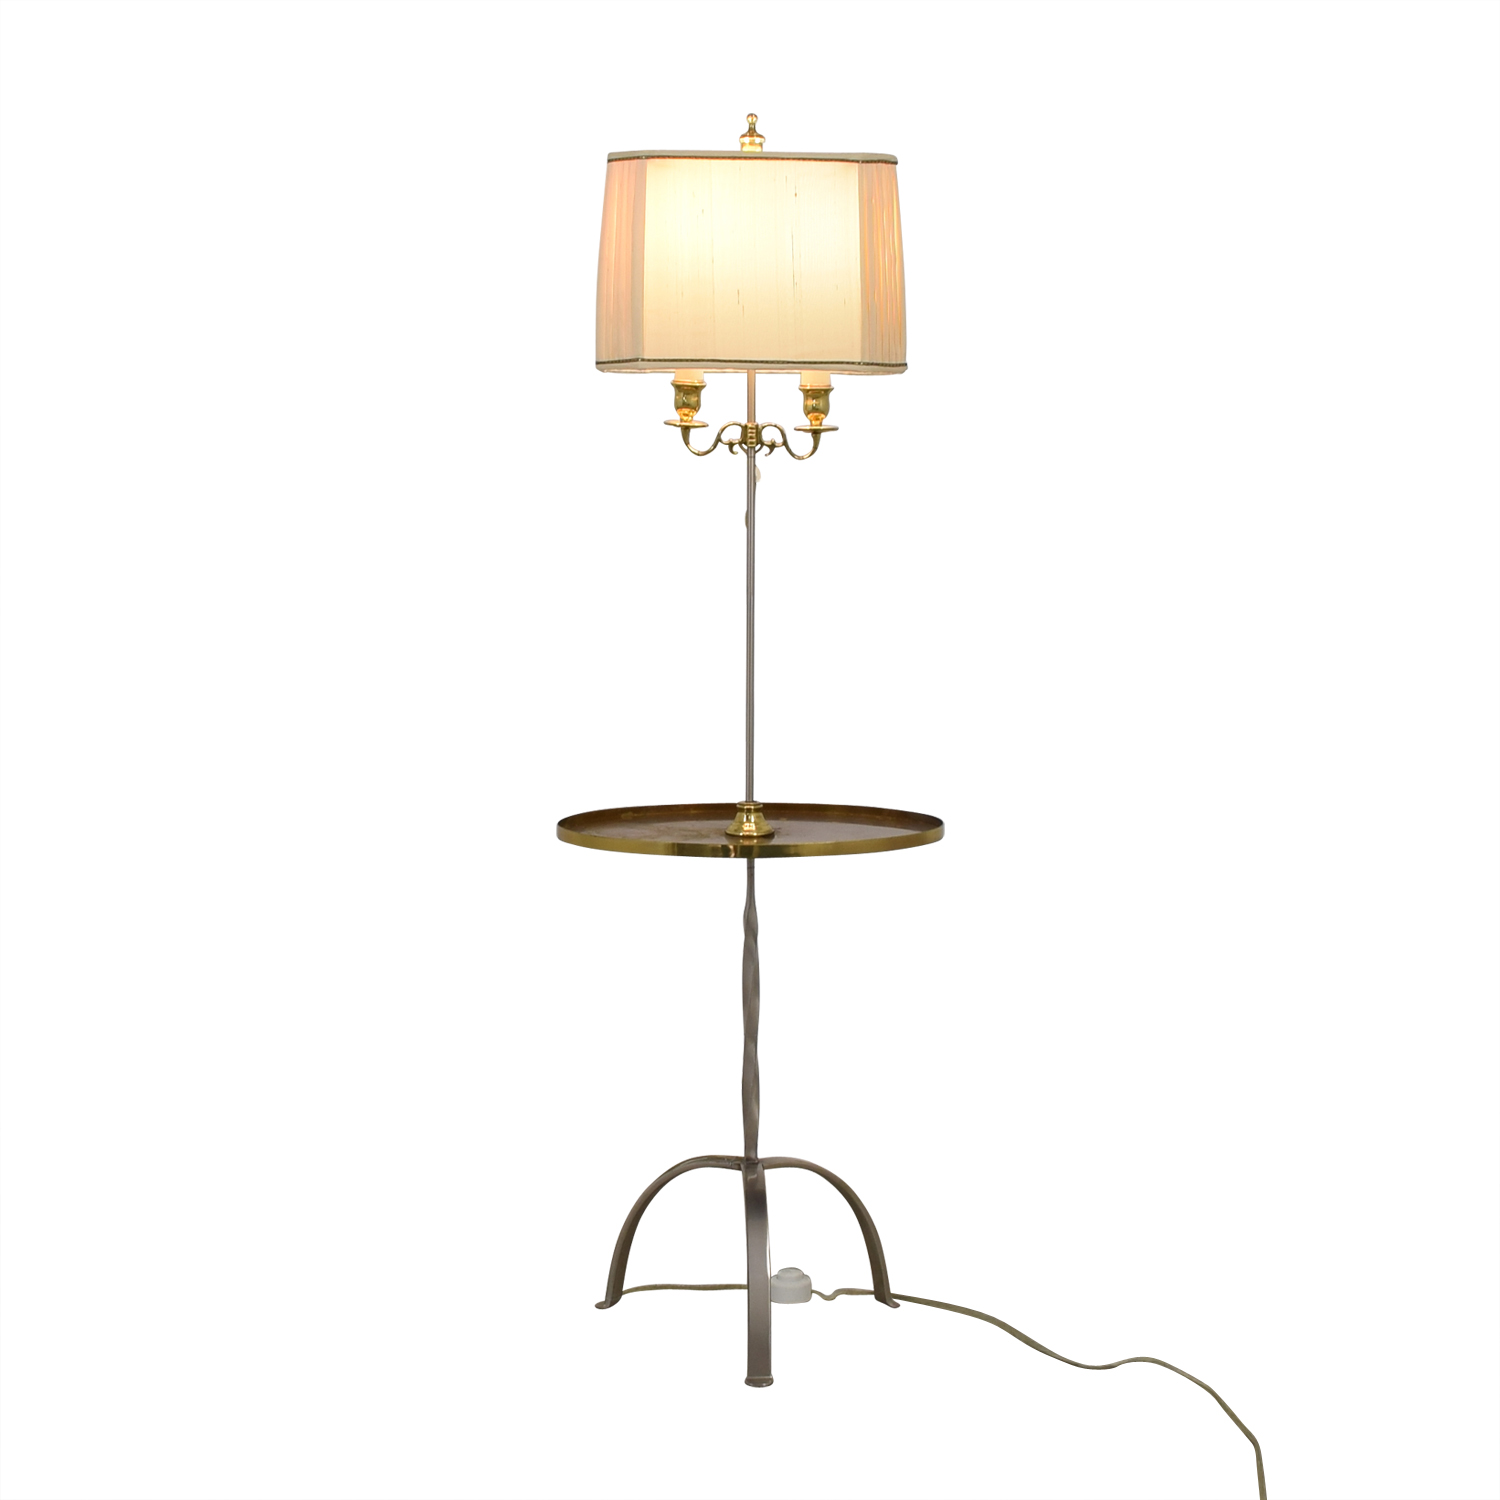 Standing Lamp with Center Table